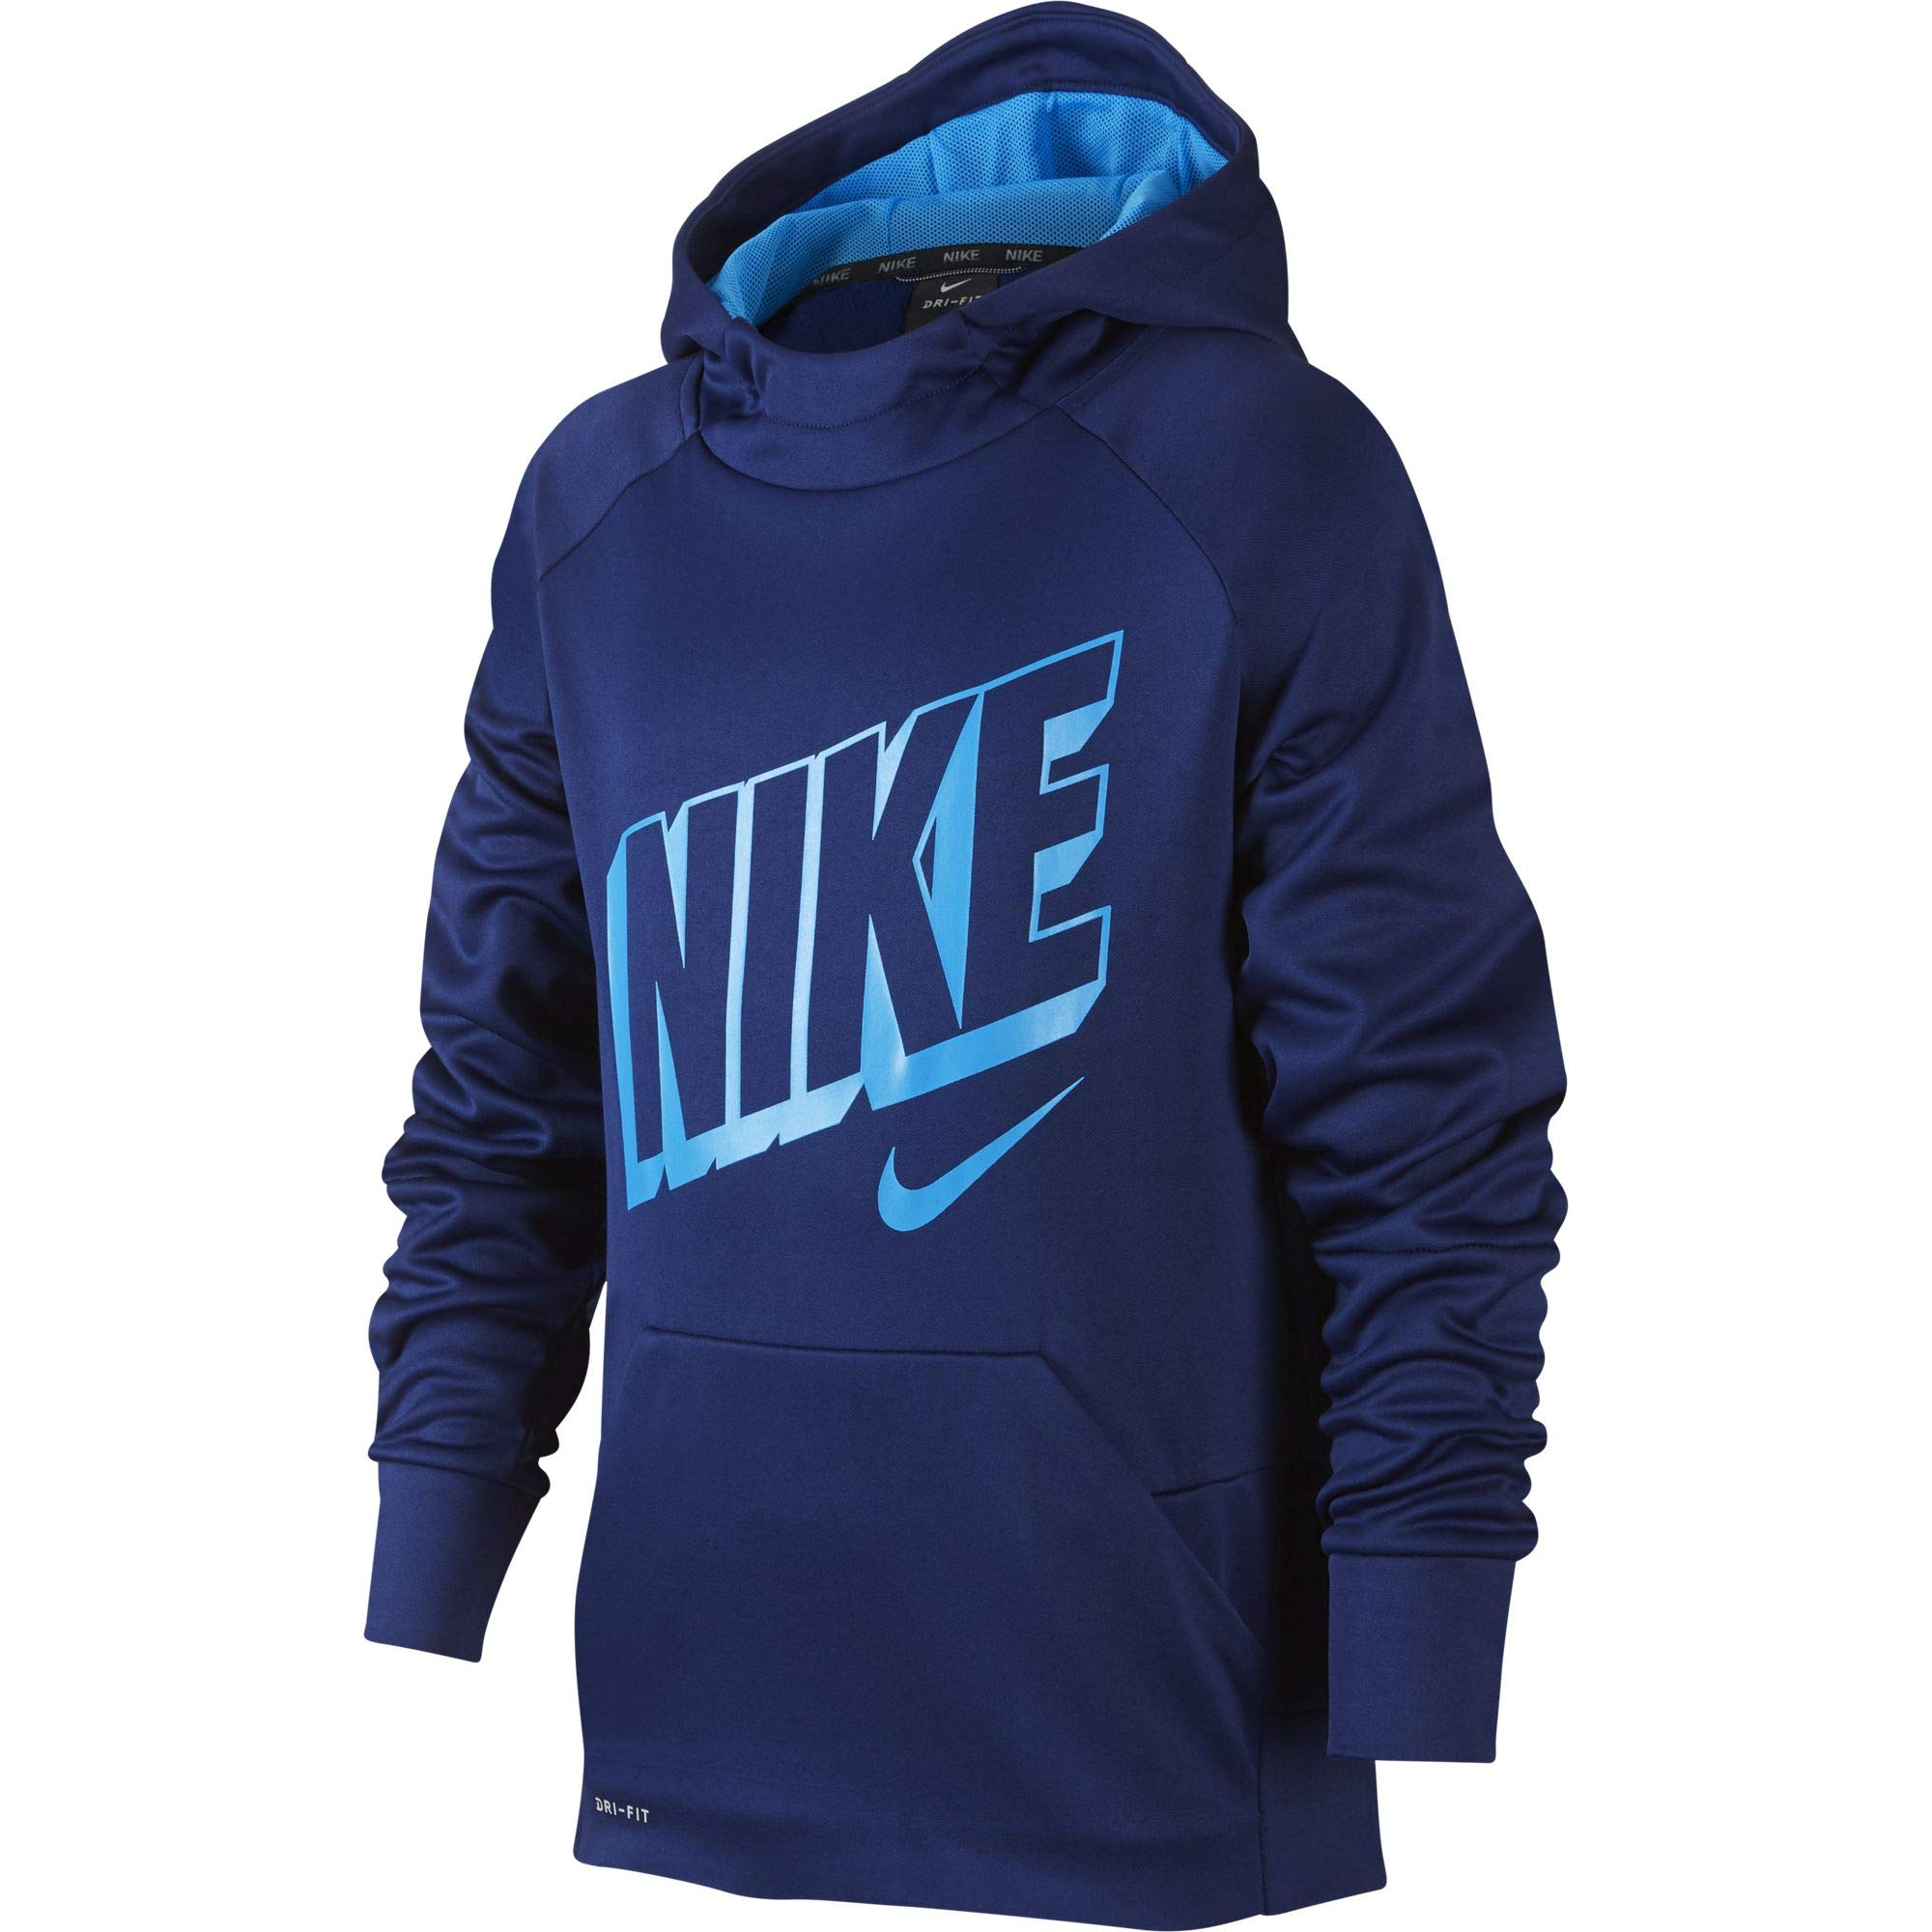 Nike Boy's Therma Graphic Training Pullover Hoodie Blue Void/Blue Hero Size Small